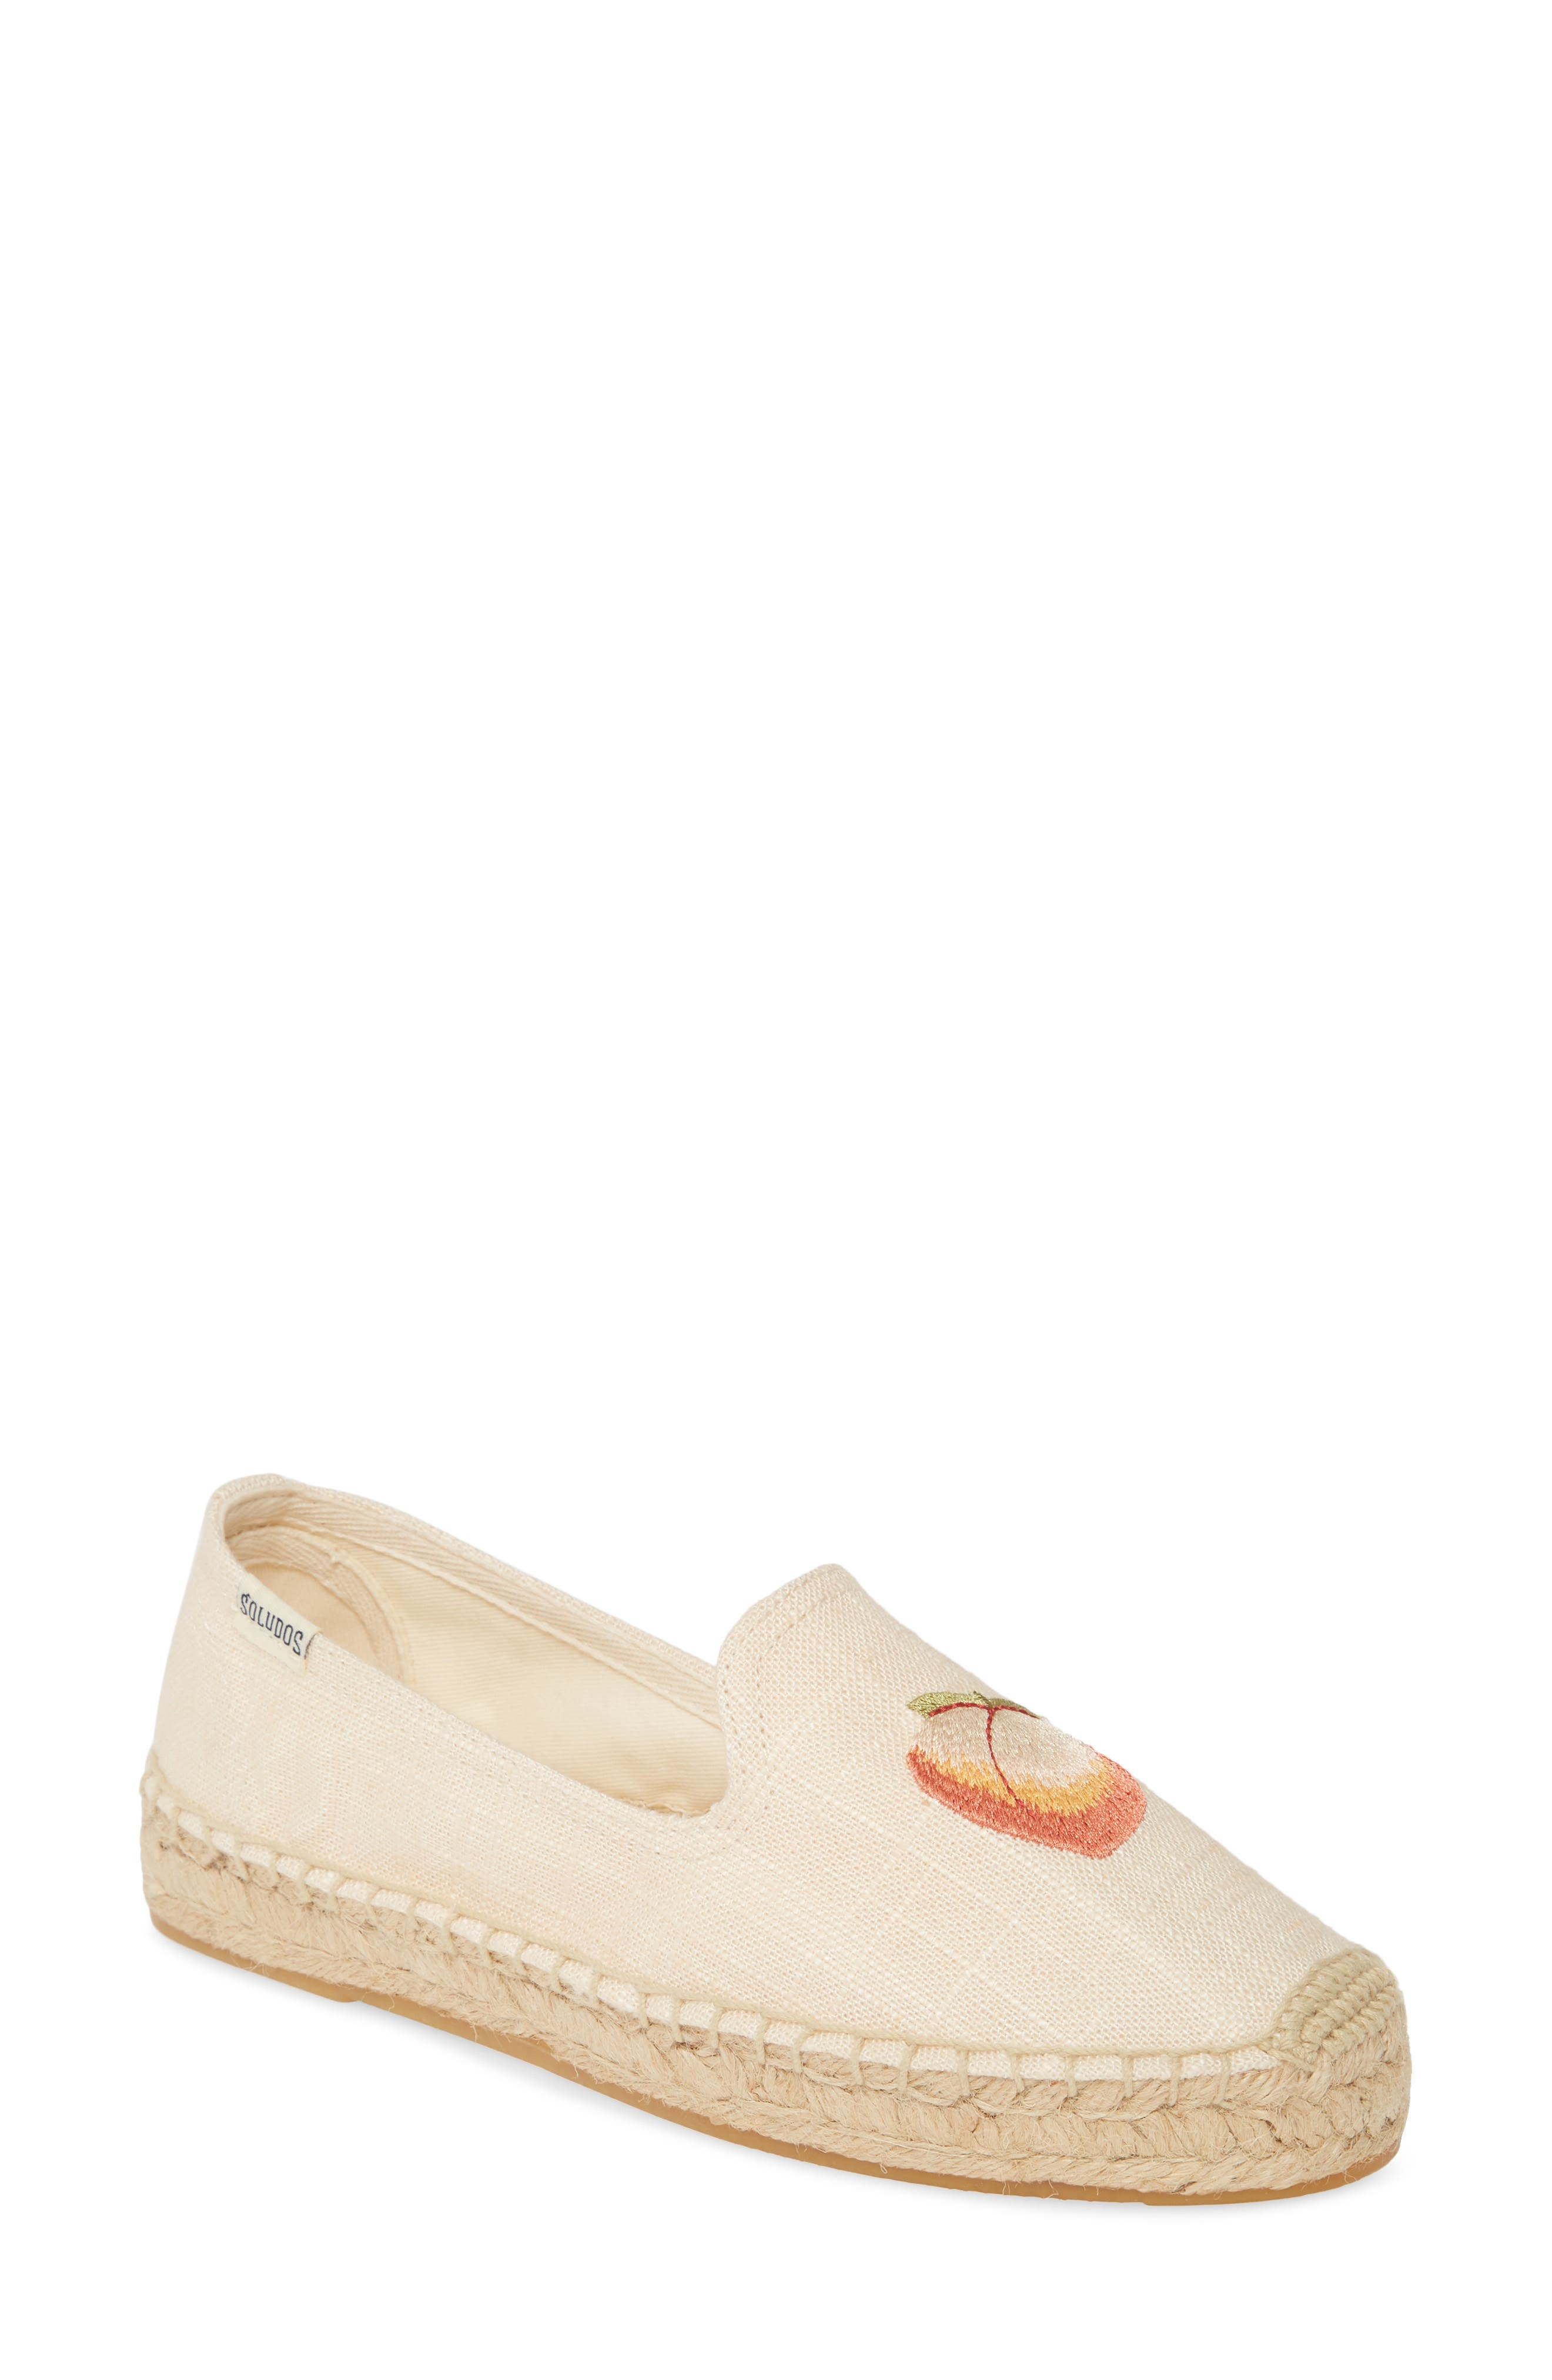 Soludos Peach Bum Embroidered Espadrille, Pink